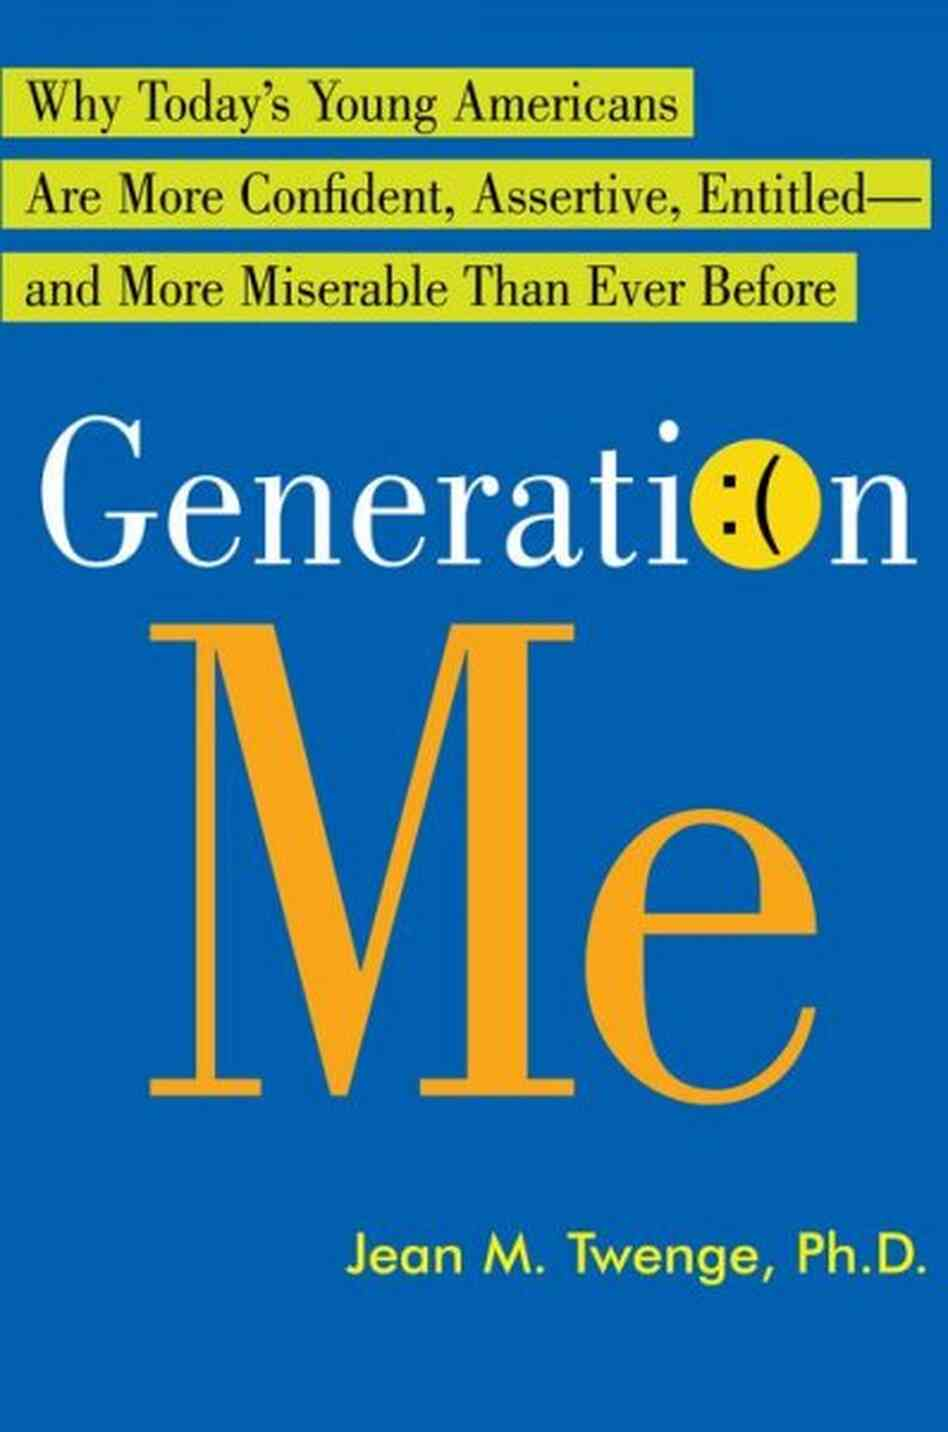 What would you name today's youngest generation of Americans?